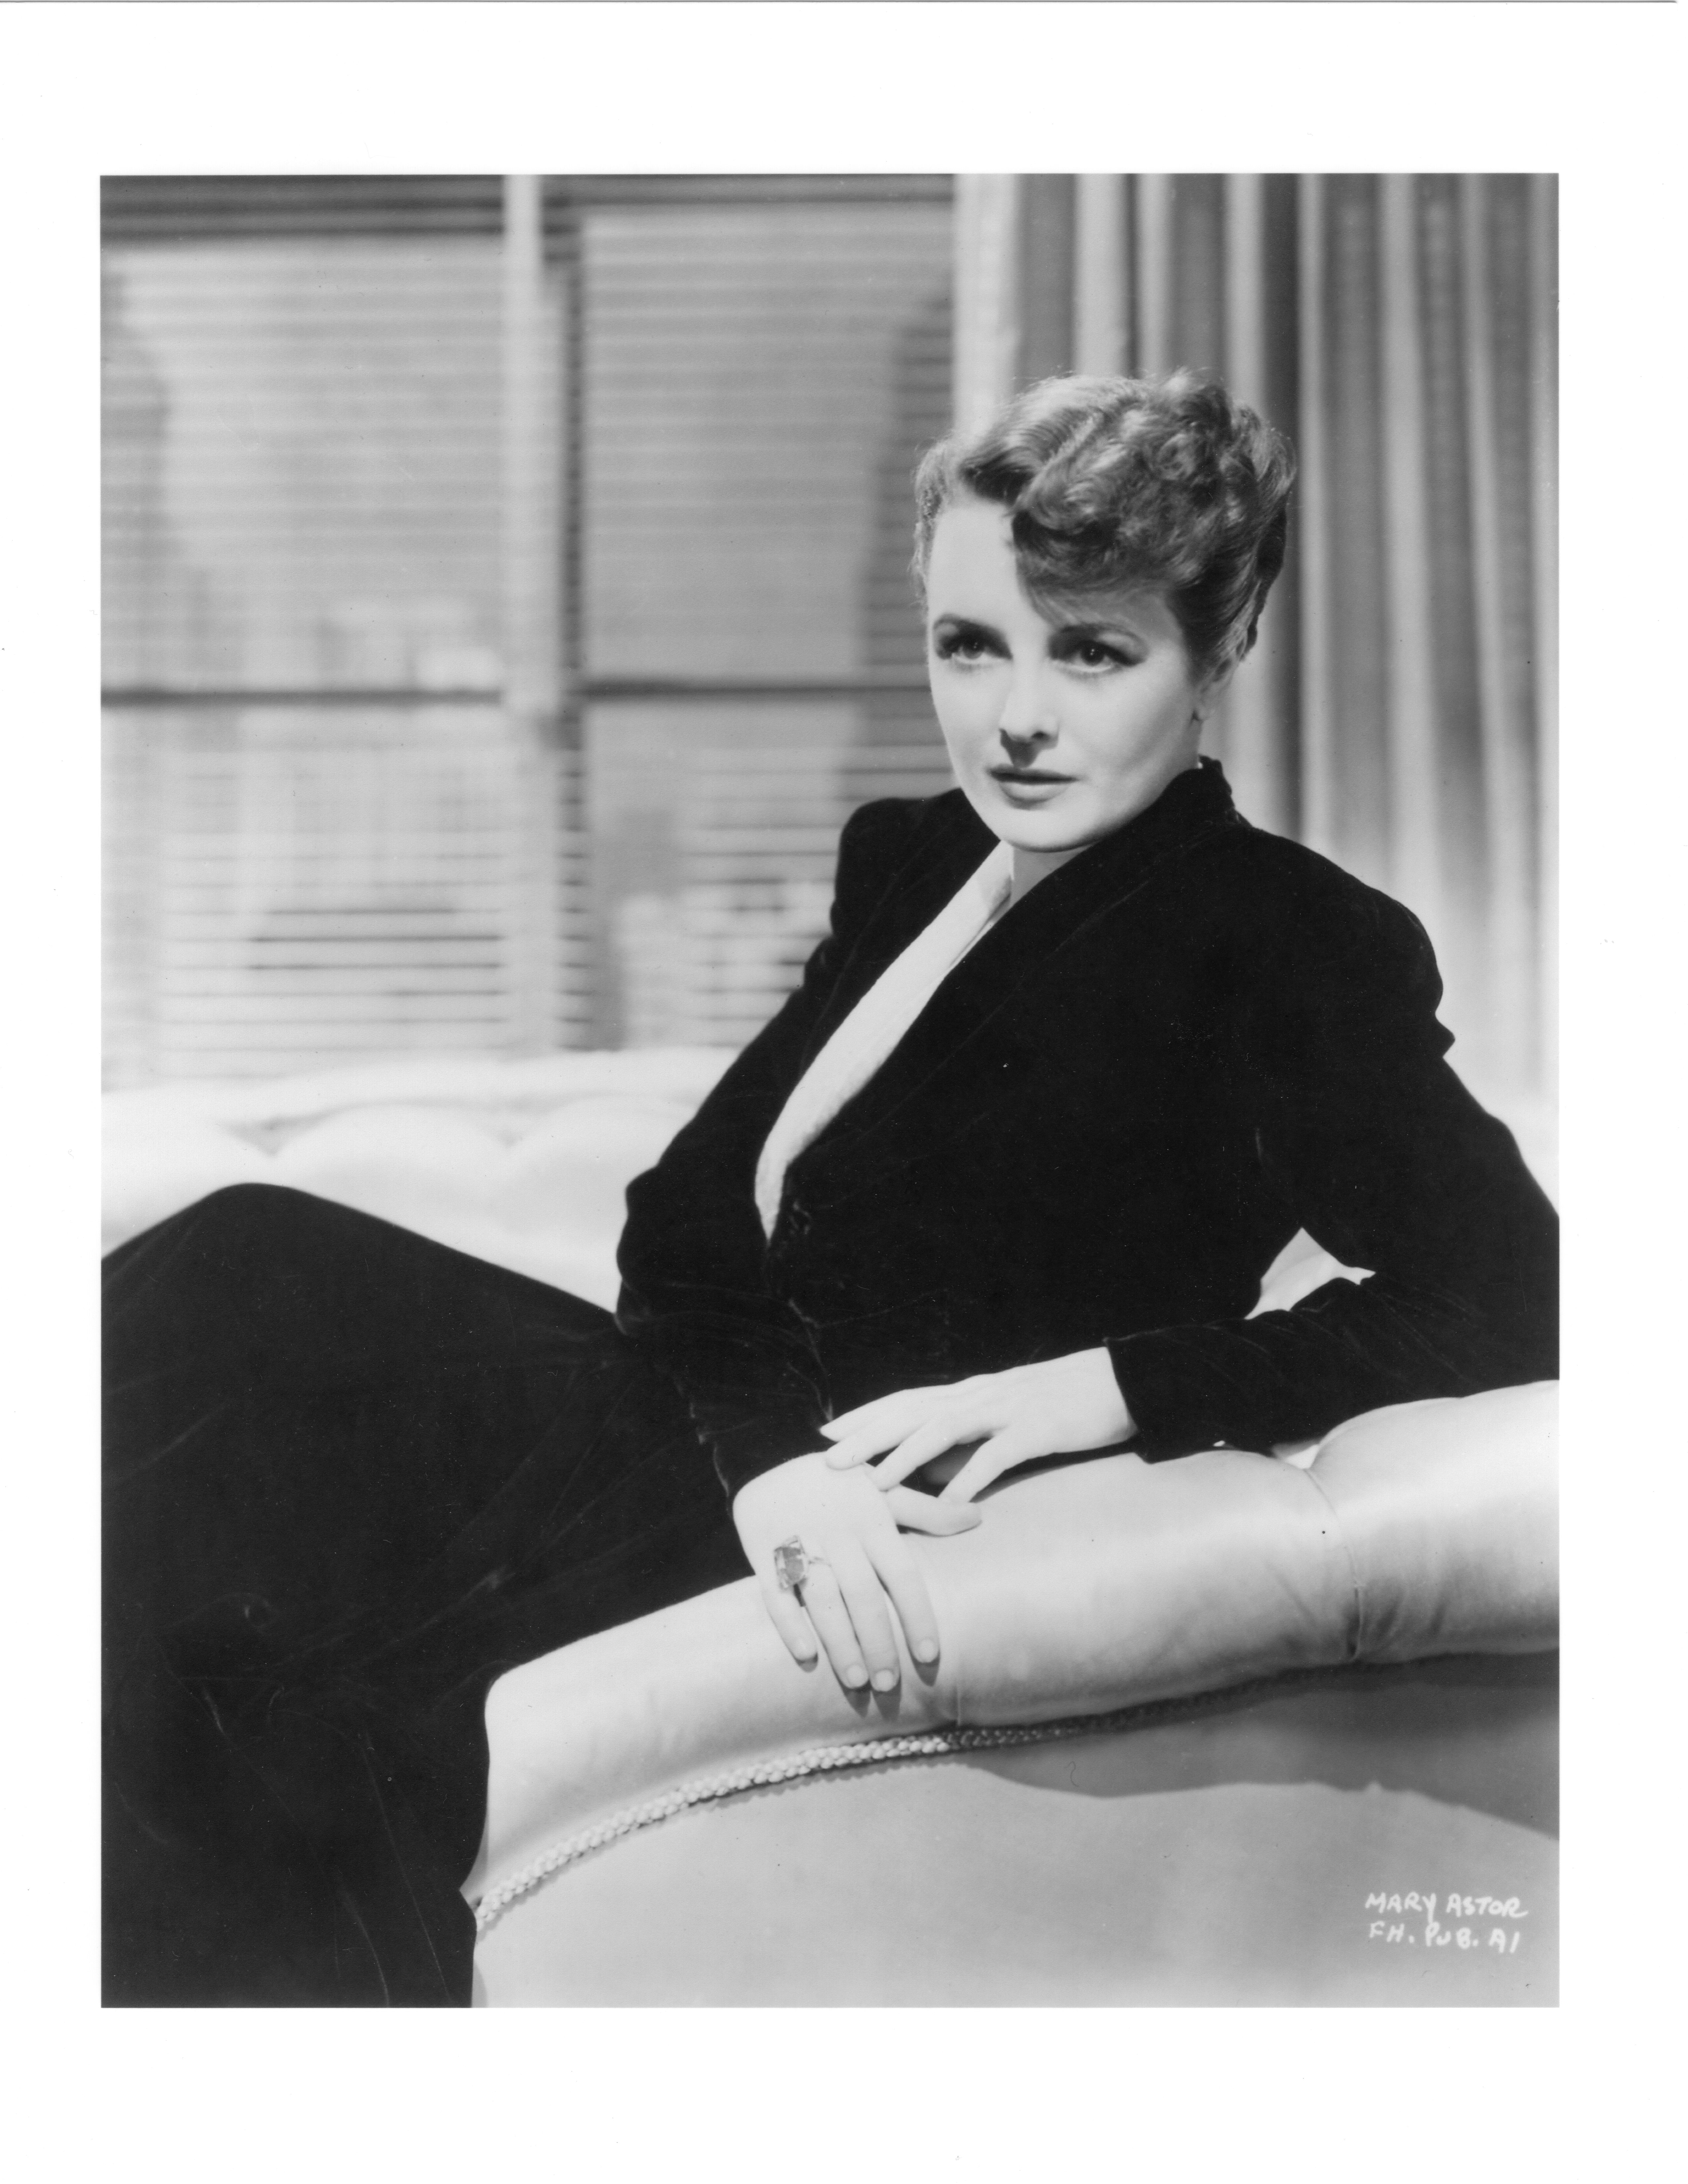 Mary Astor/Courtesy of the Academy of Motion Picture Arts and Sciences